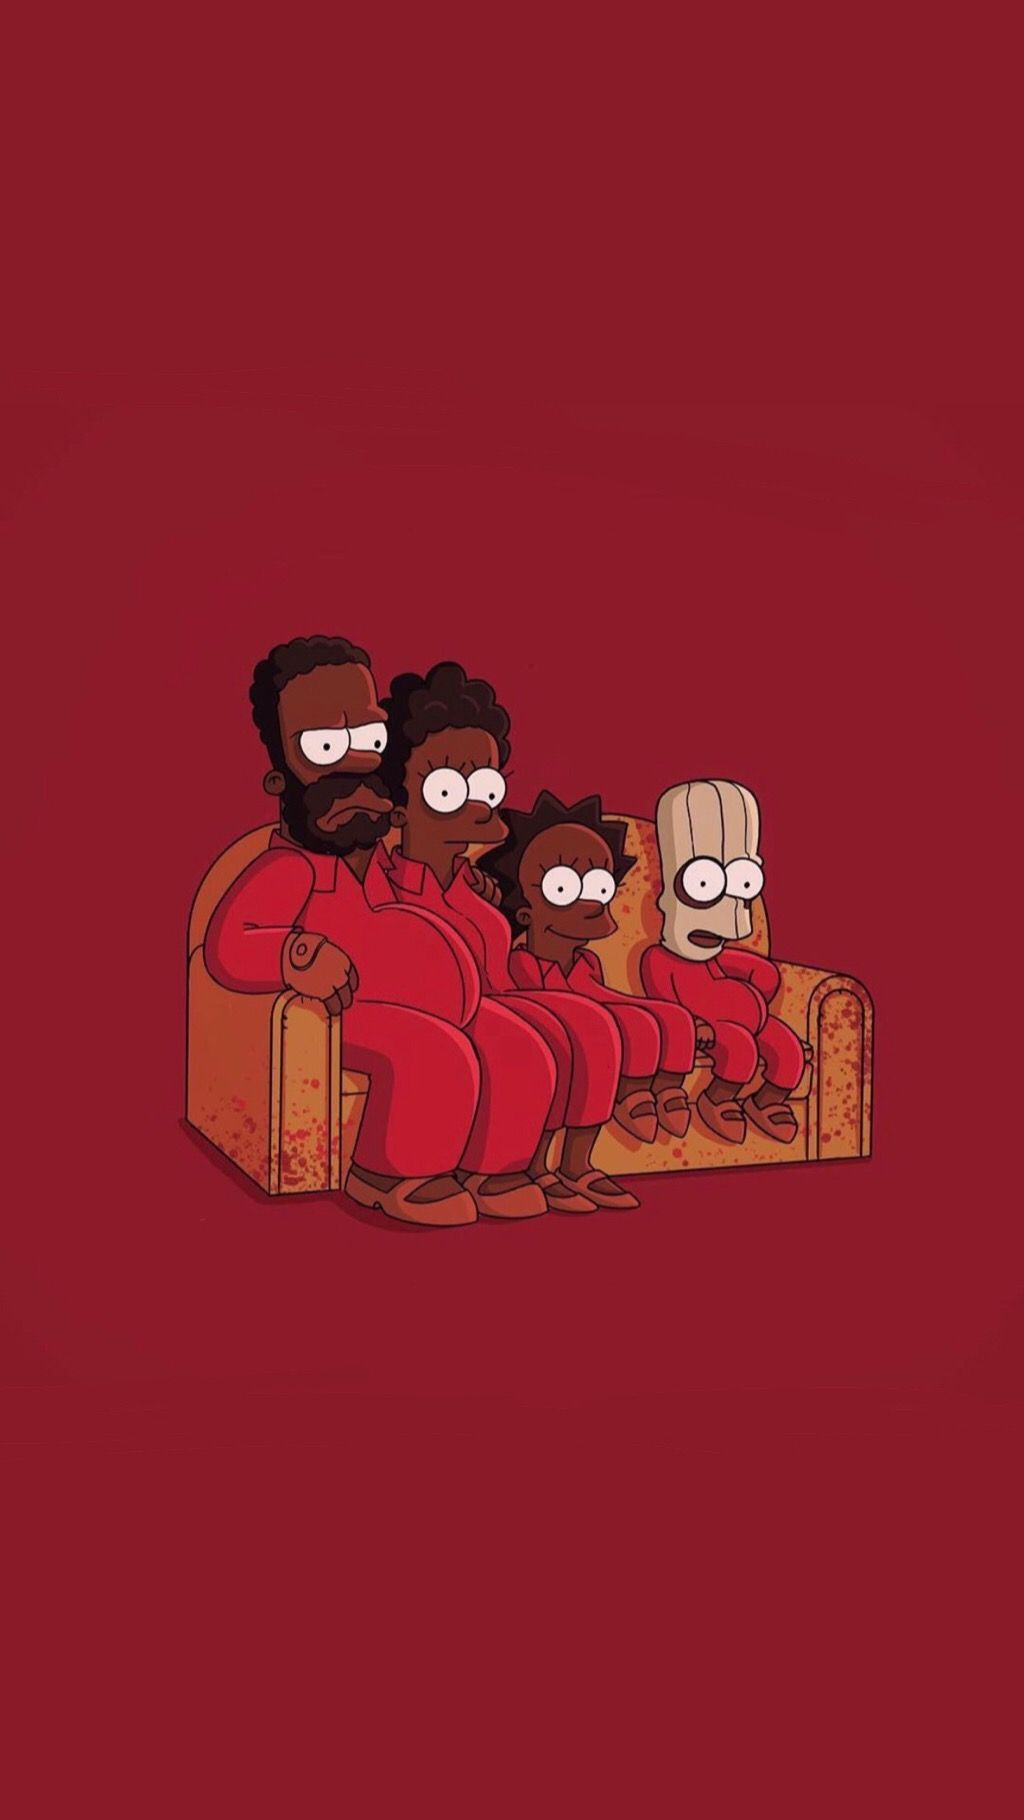 Us Movie Wallpaper Simpsons Red Cartoon Wallpaper Iphone Crazy